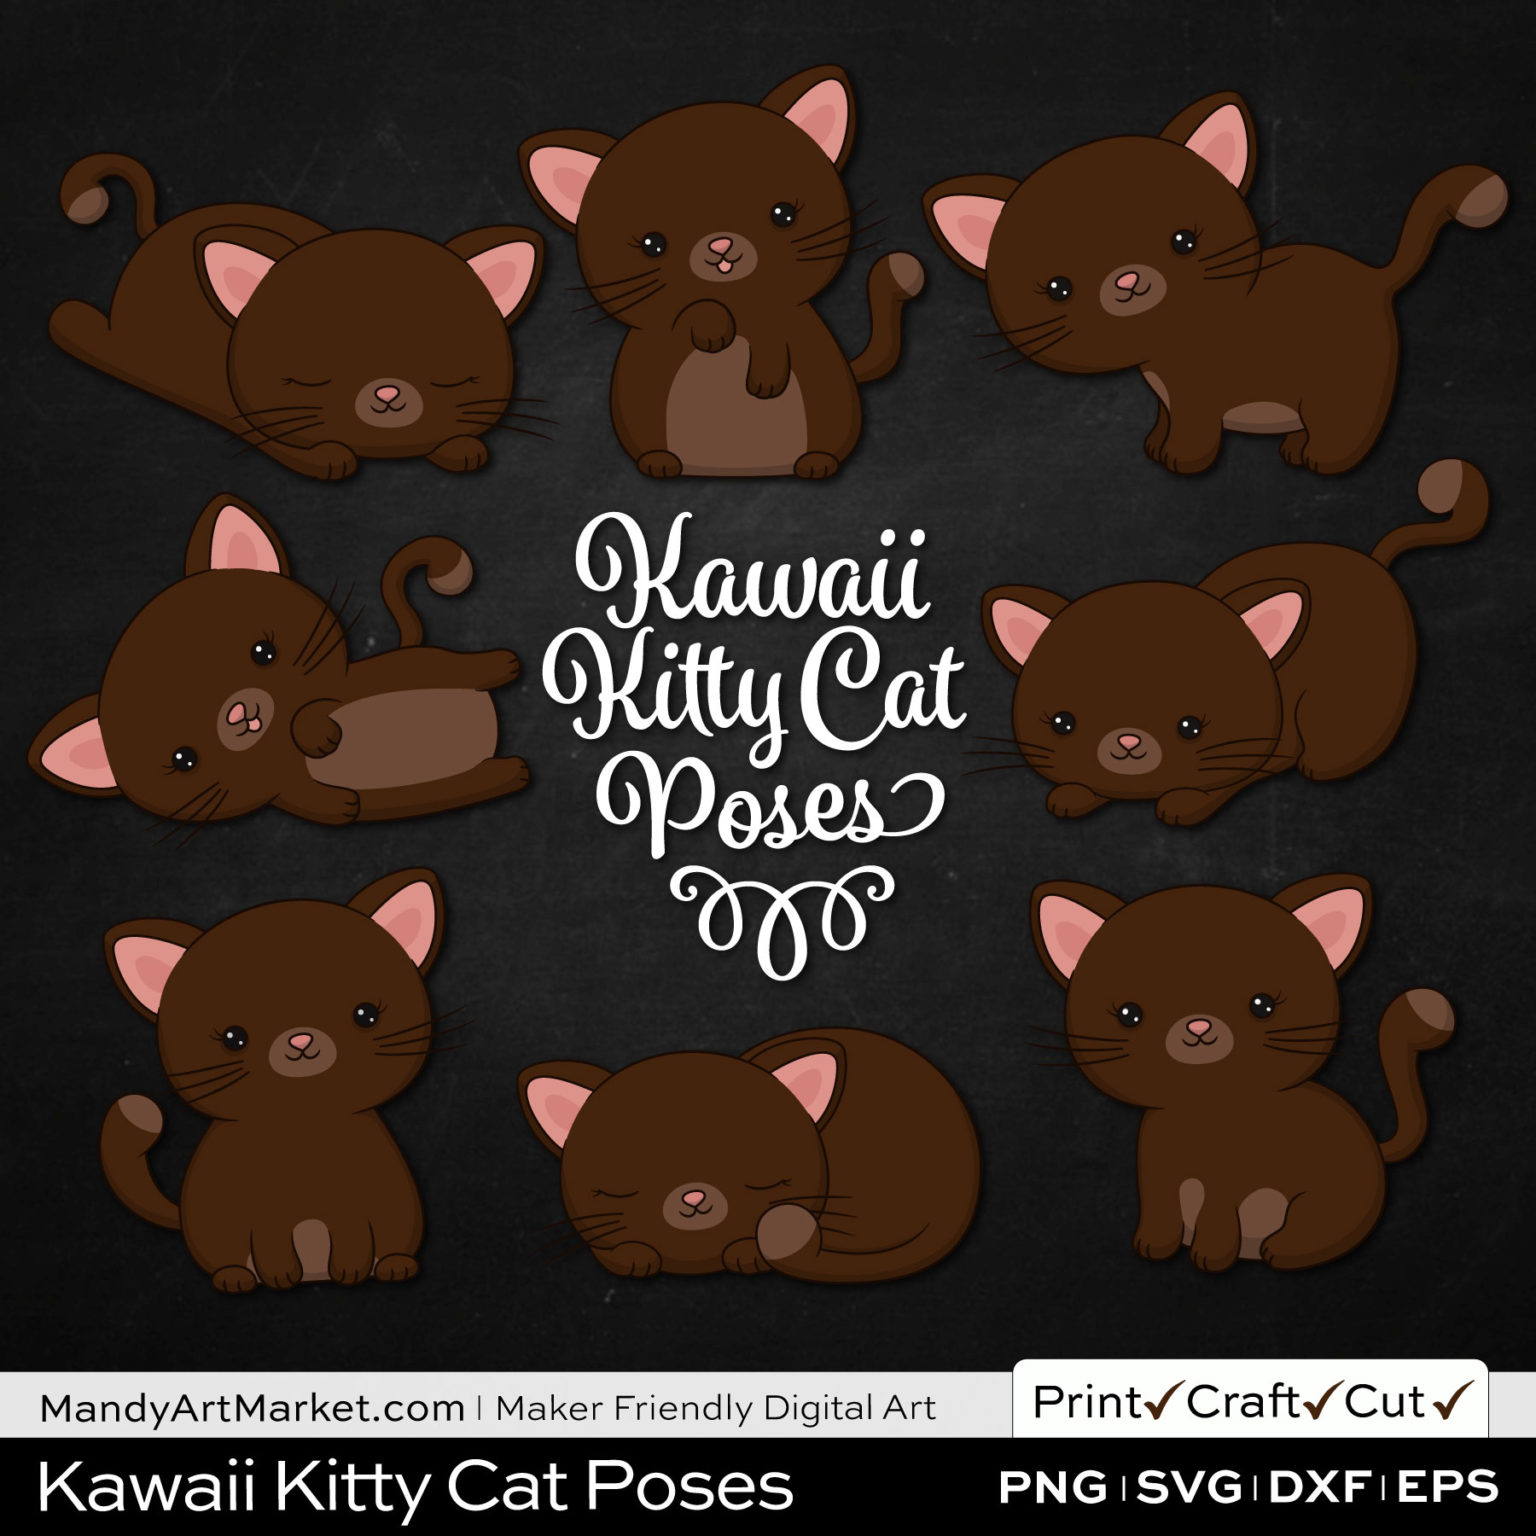 Chocolate Brown Kawaii Kitty Cat Poses Clipart on Black Background